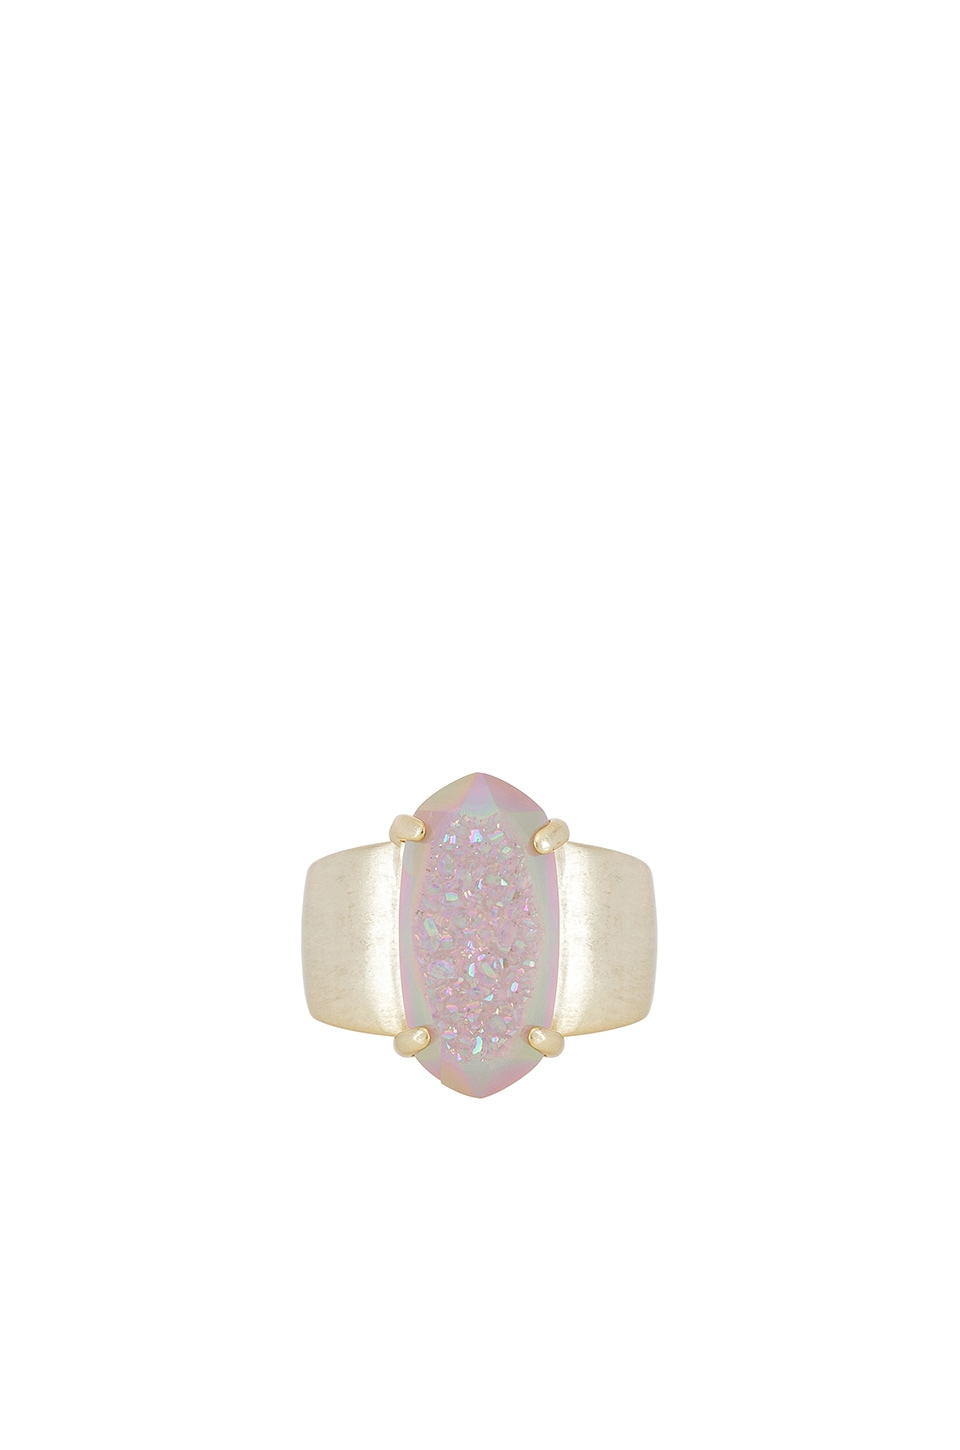 Kendra Scott Harrison Cocktail Ring in Gold & Iridescent Drusy